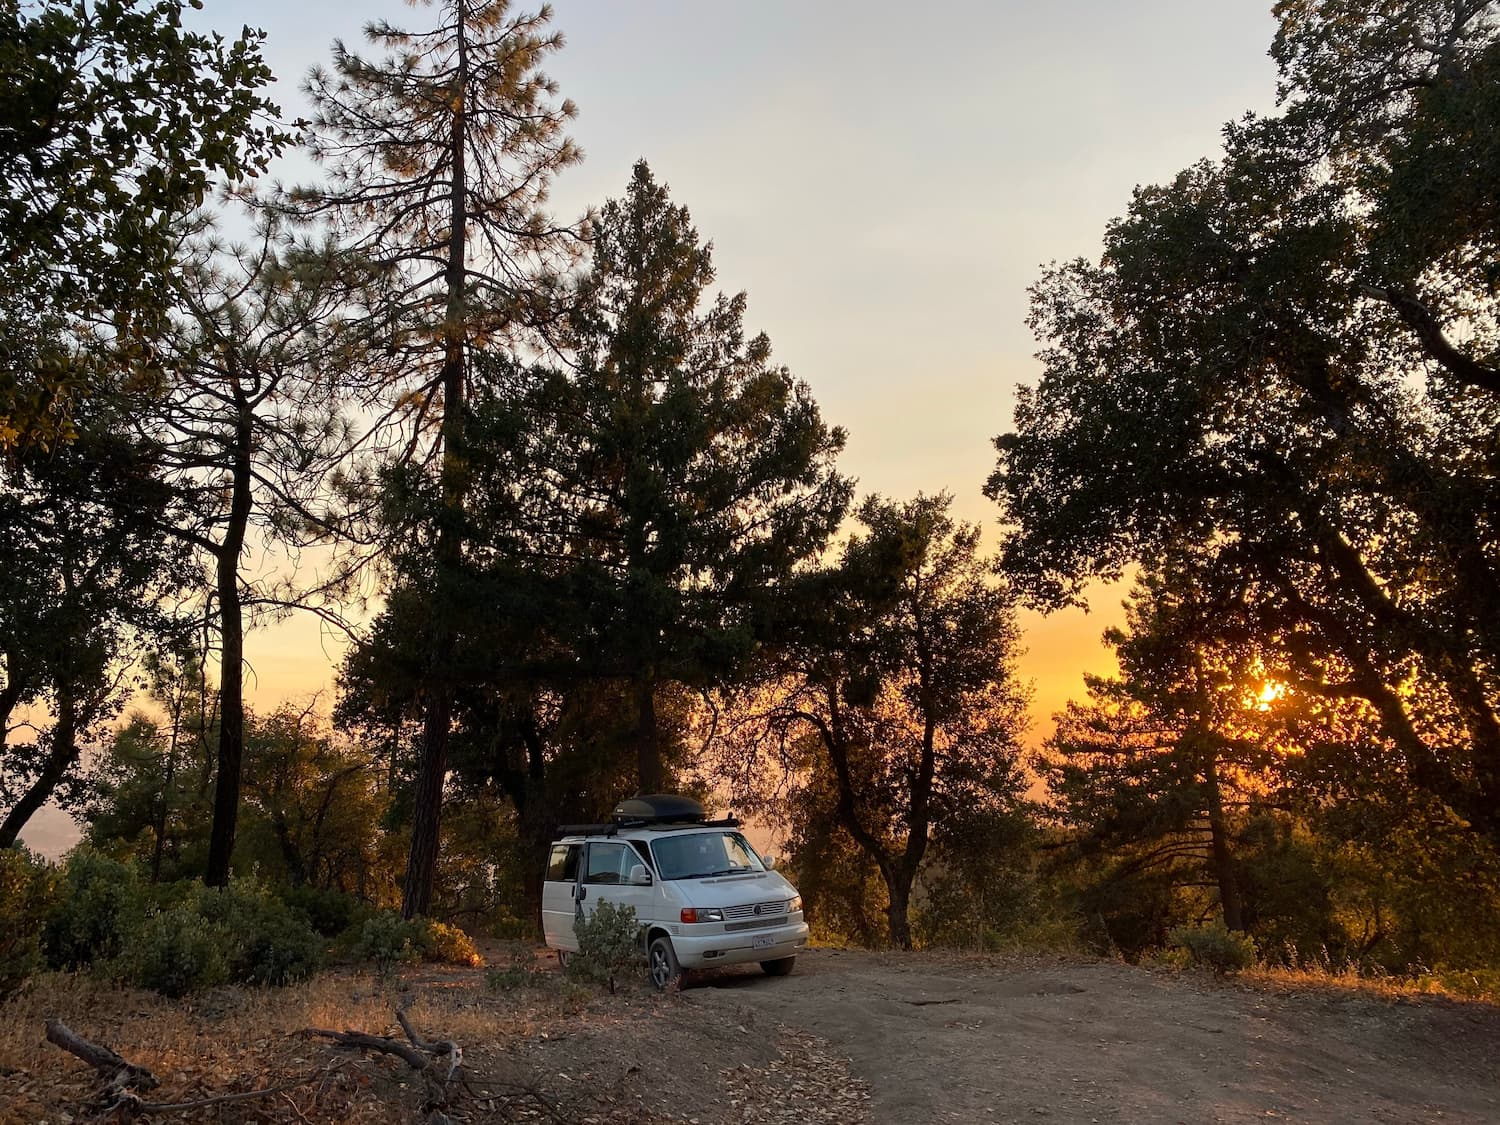 van parked in trees at sunset